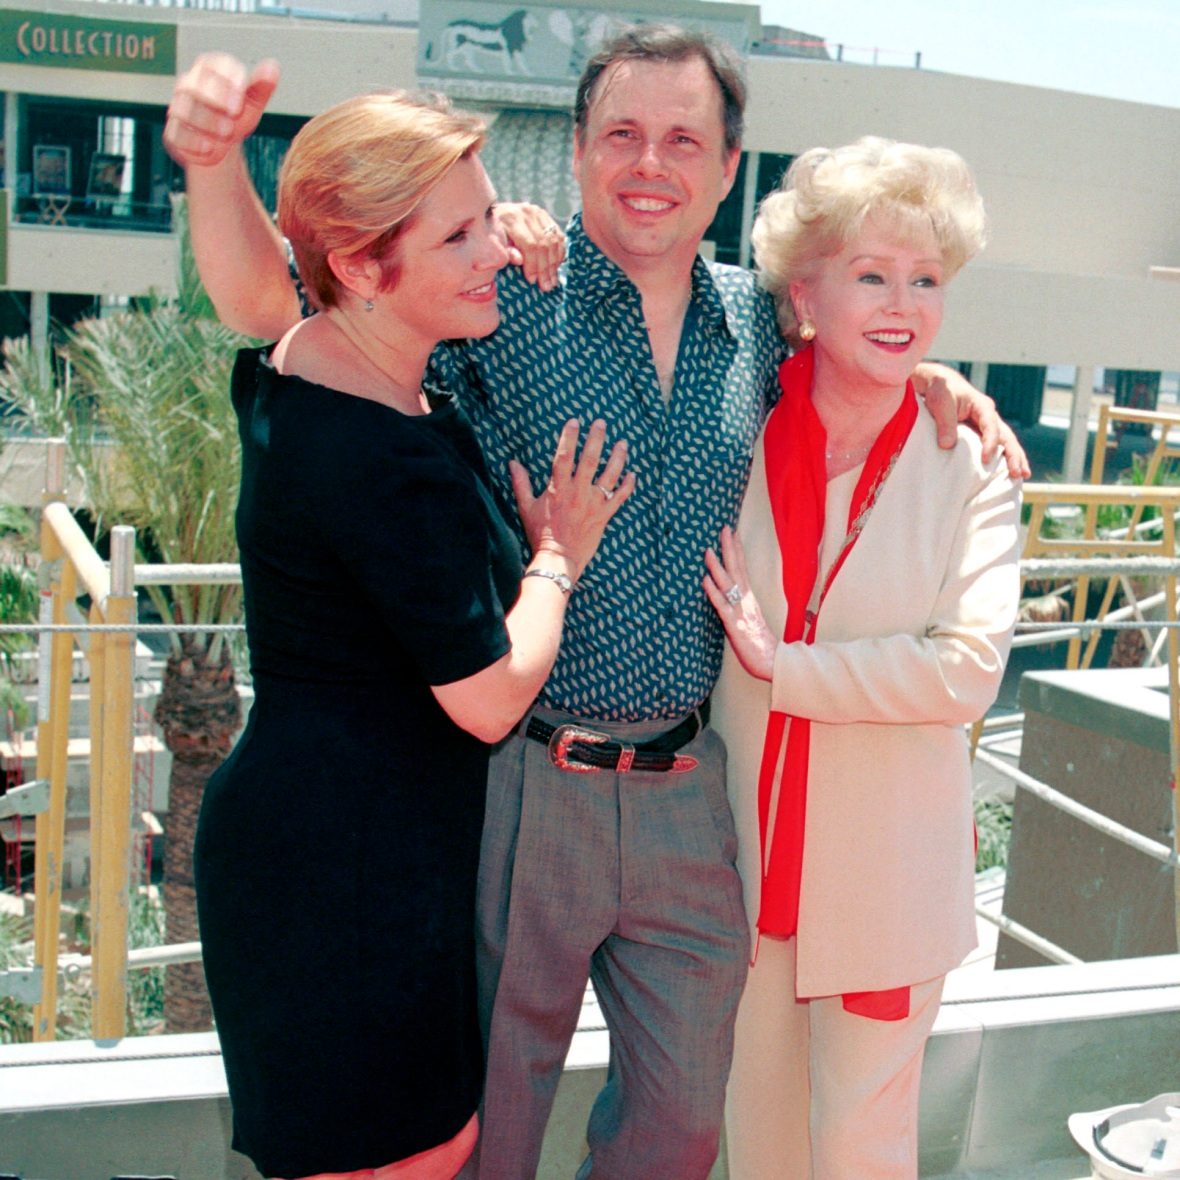 debbie reynolds getty images